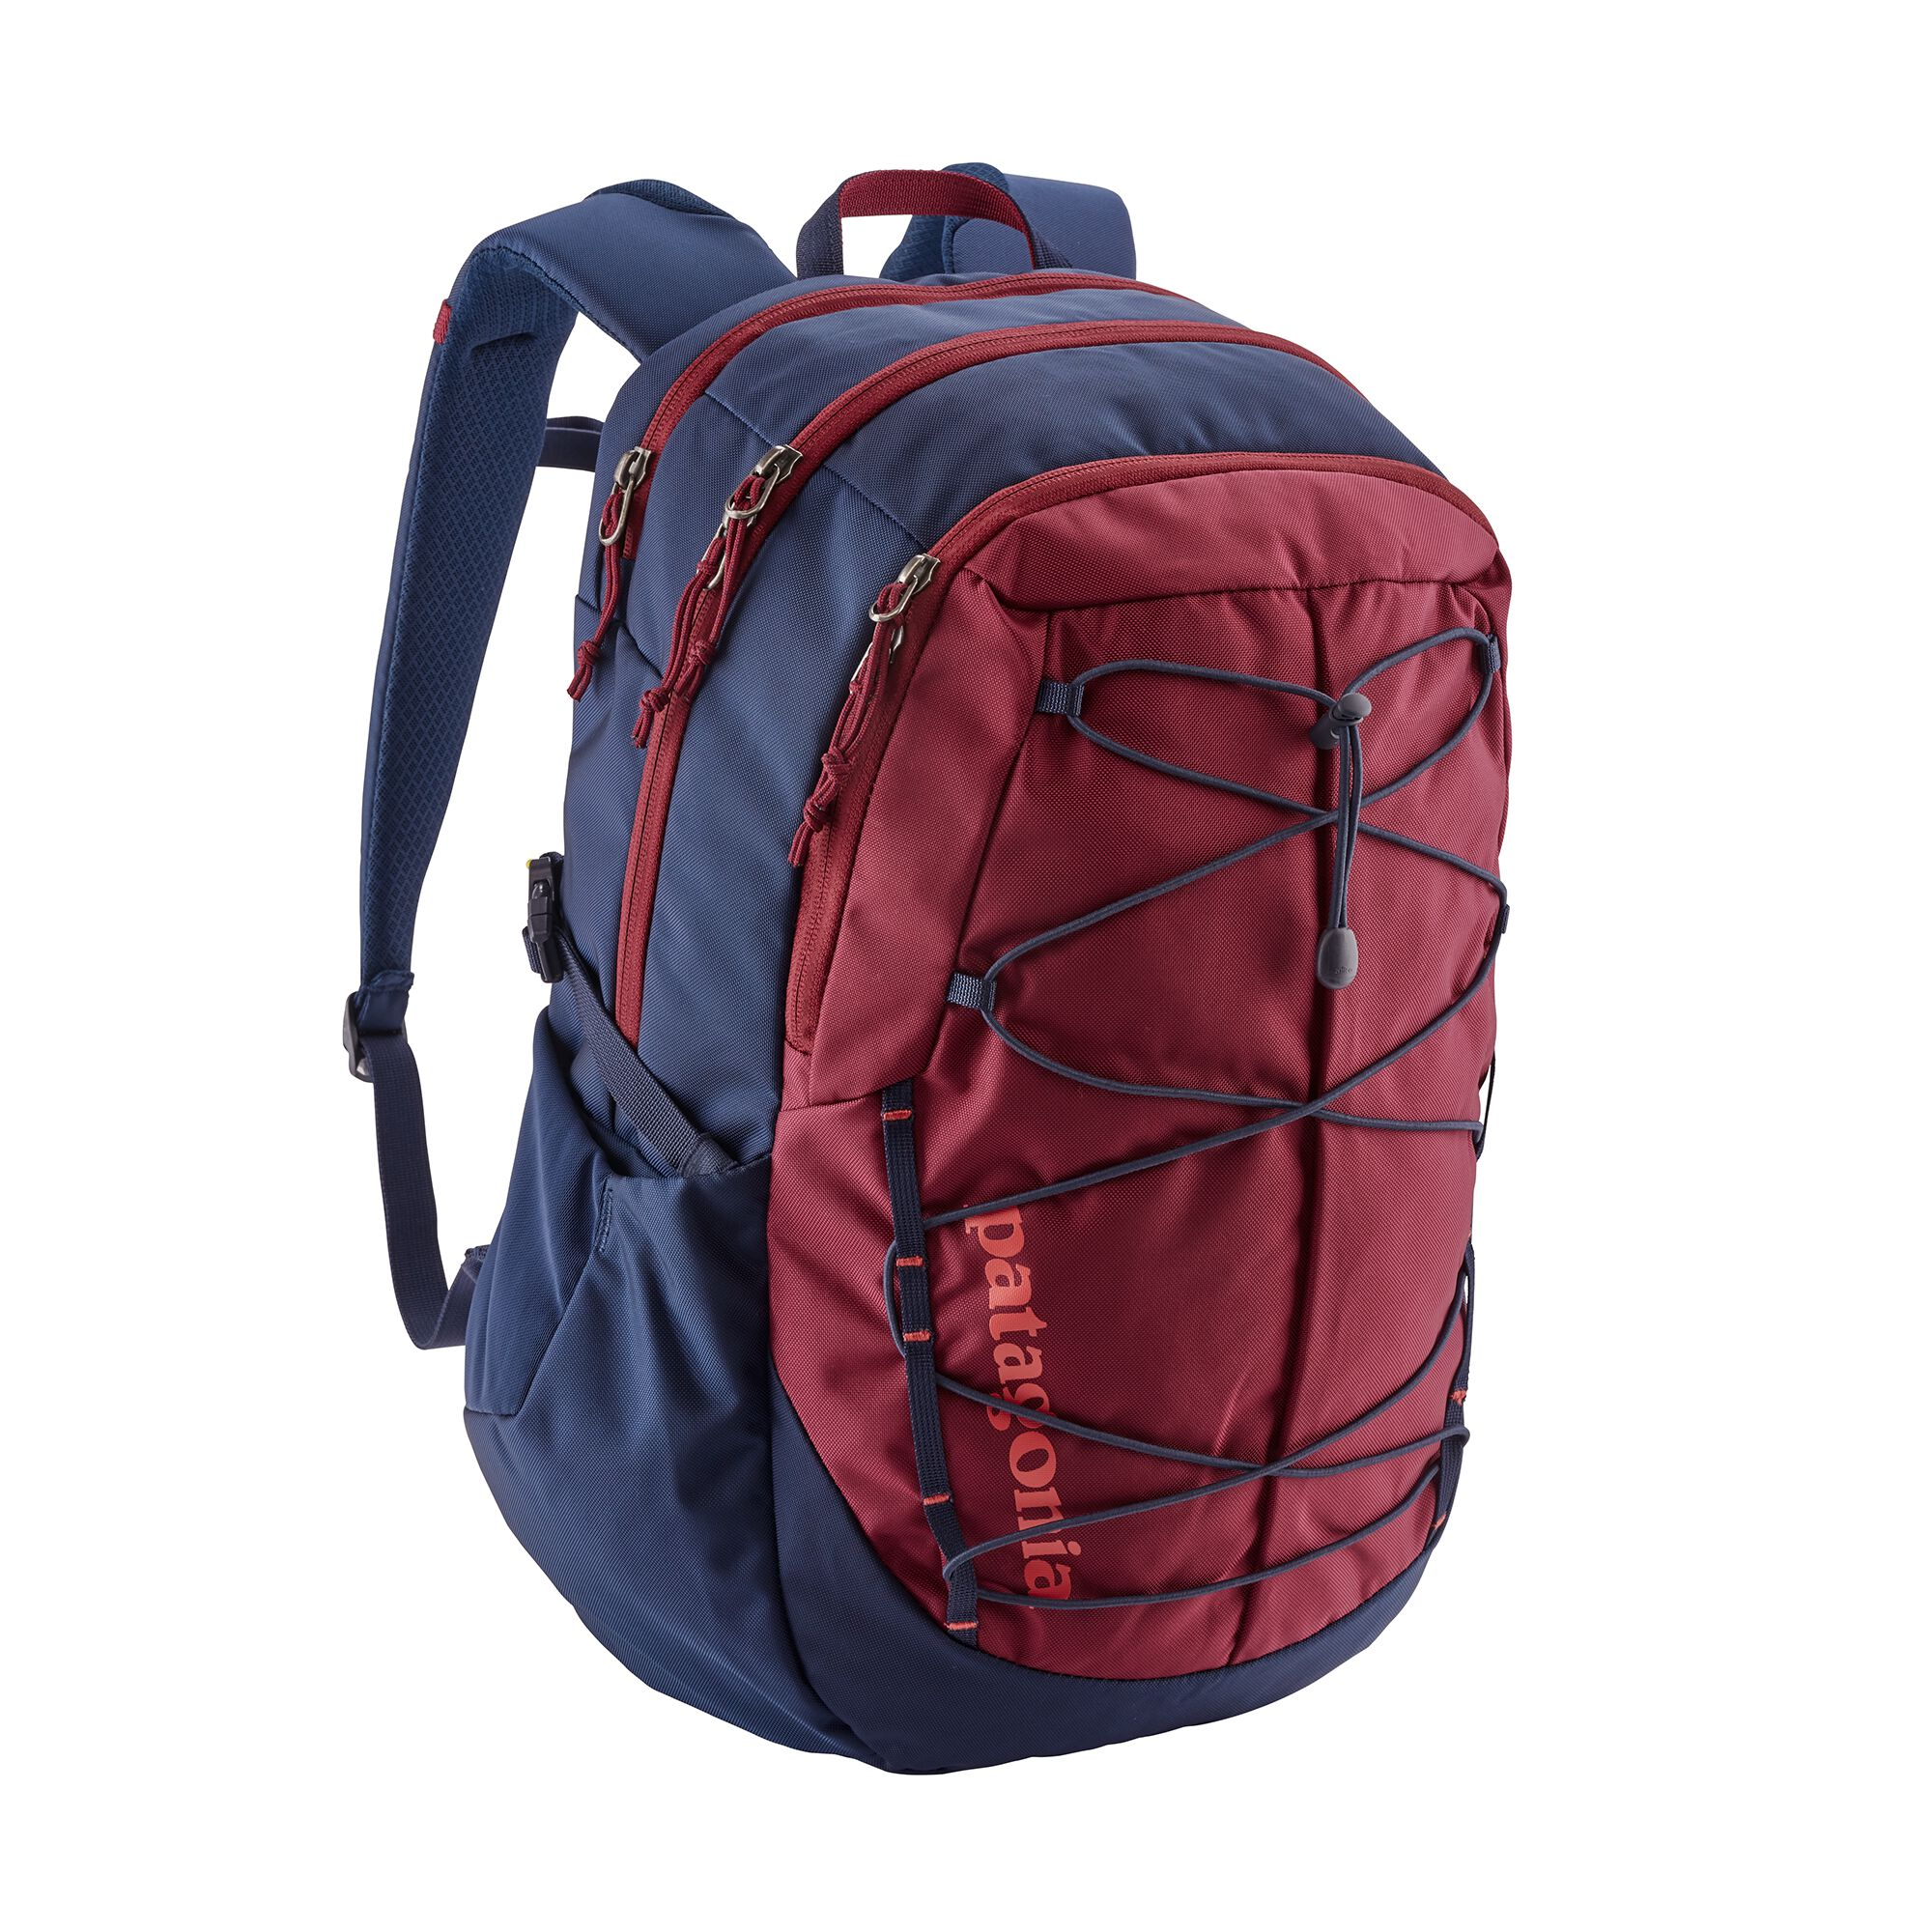 Mochila Mujer Chacabuco Pack 28L Rojo Patagonia